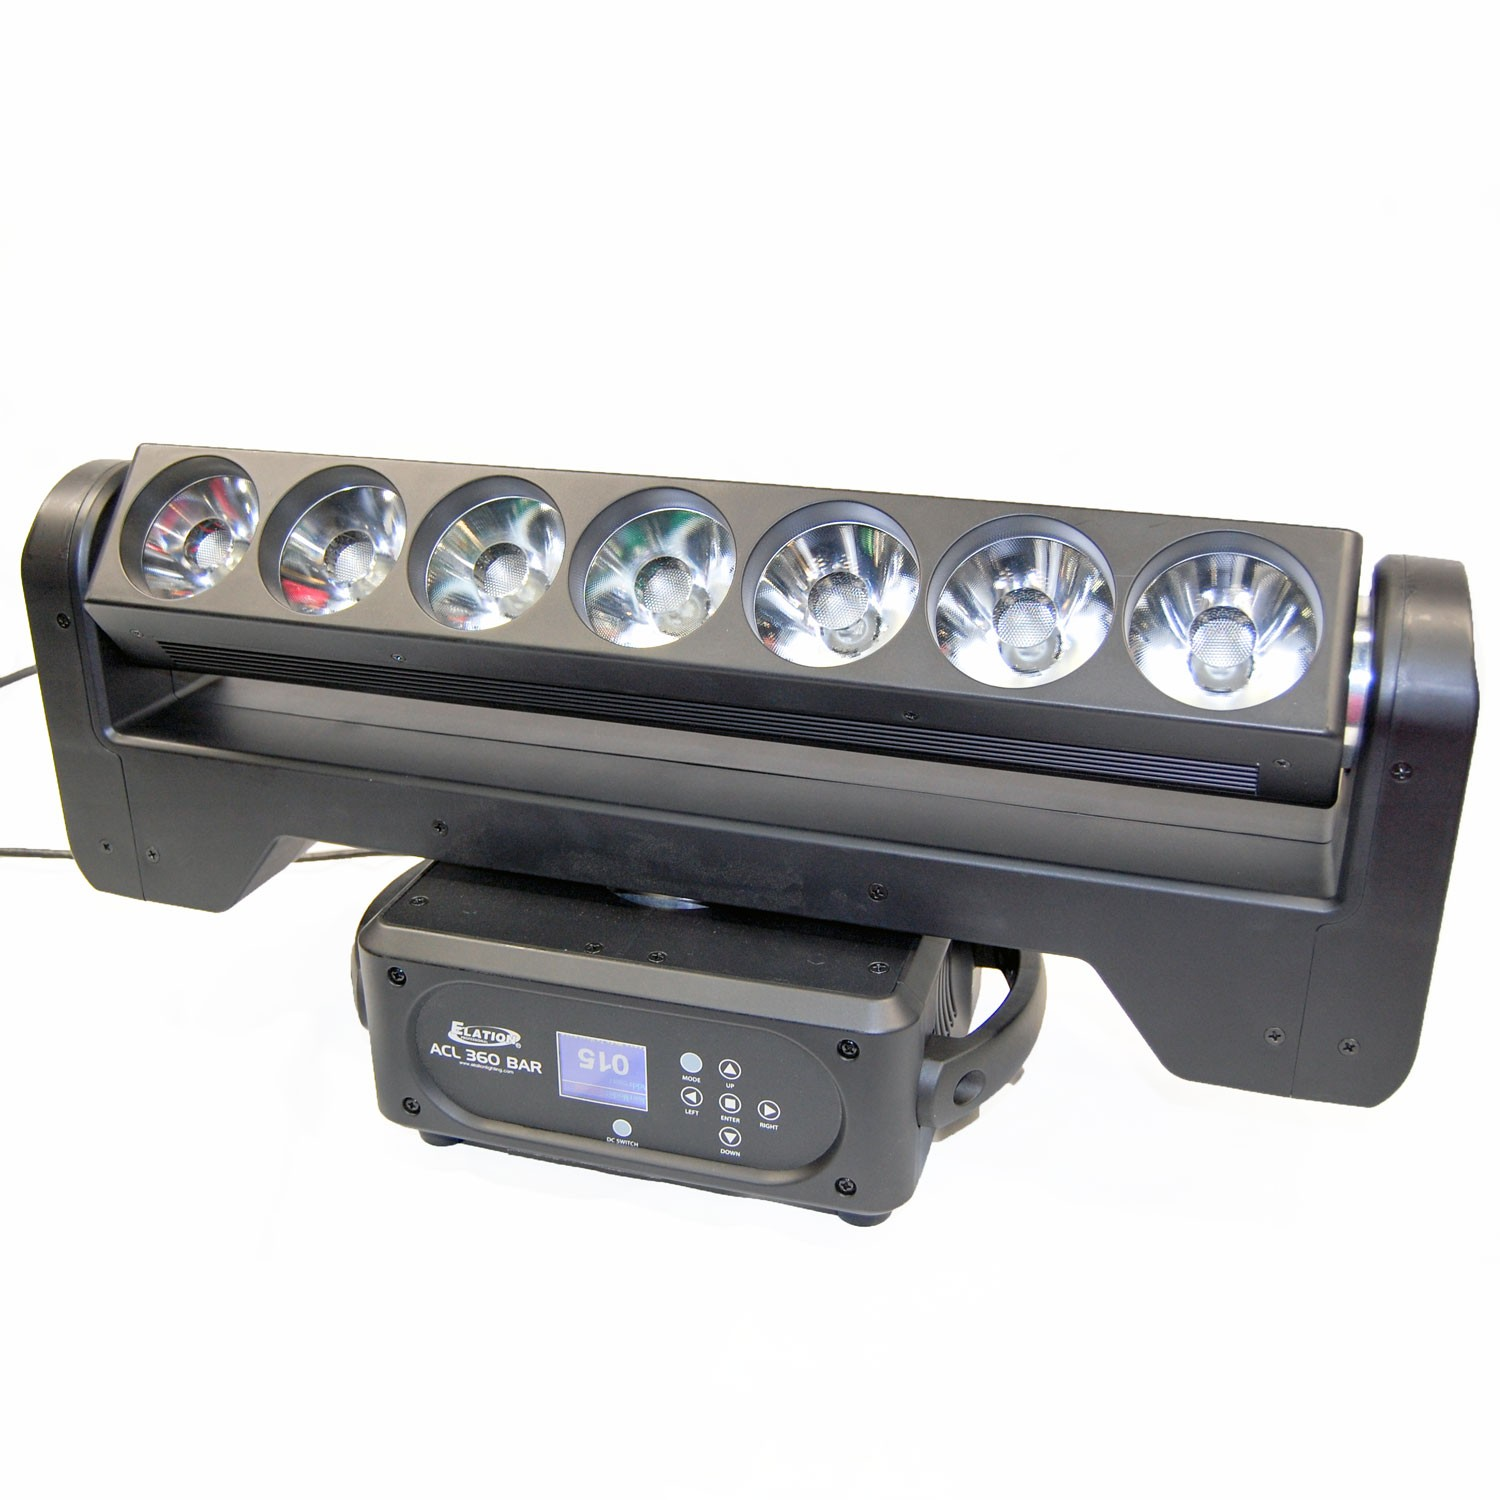 Elation ACL 360 Bar RGBW Quad Moving LED